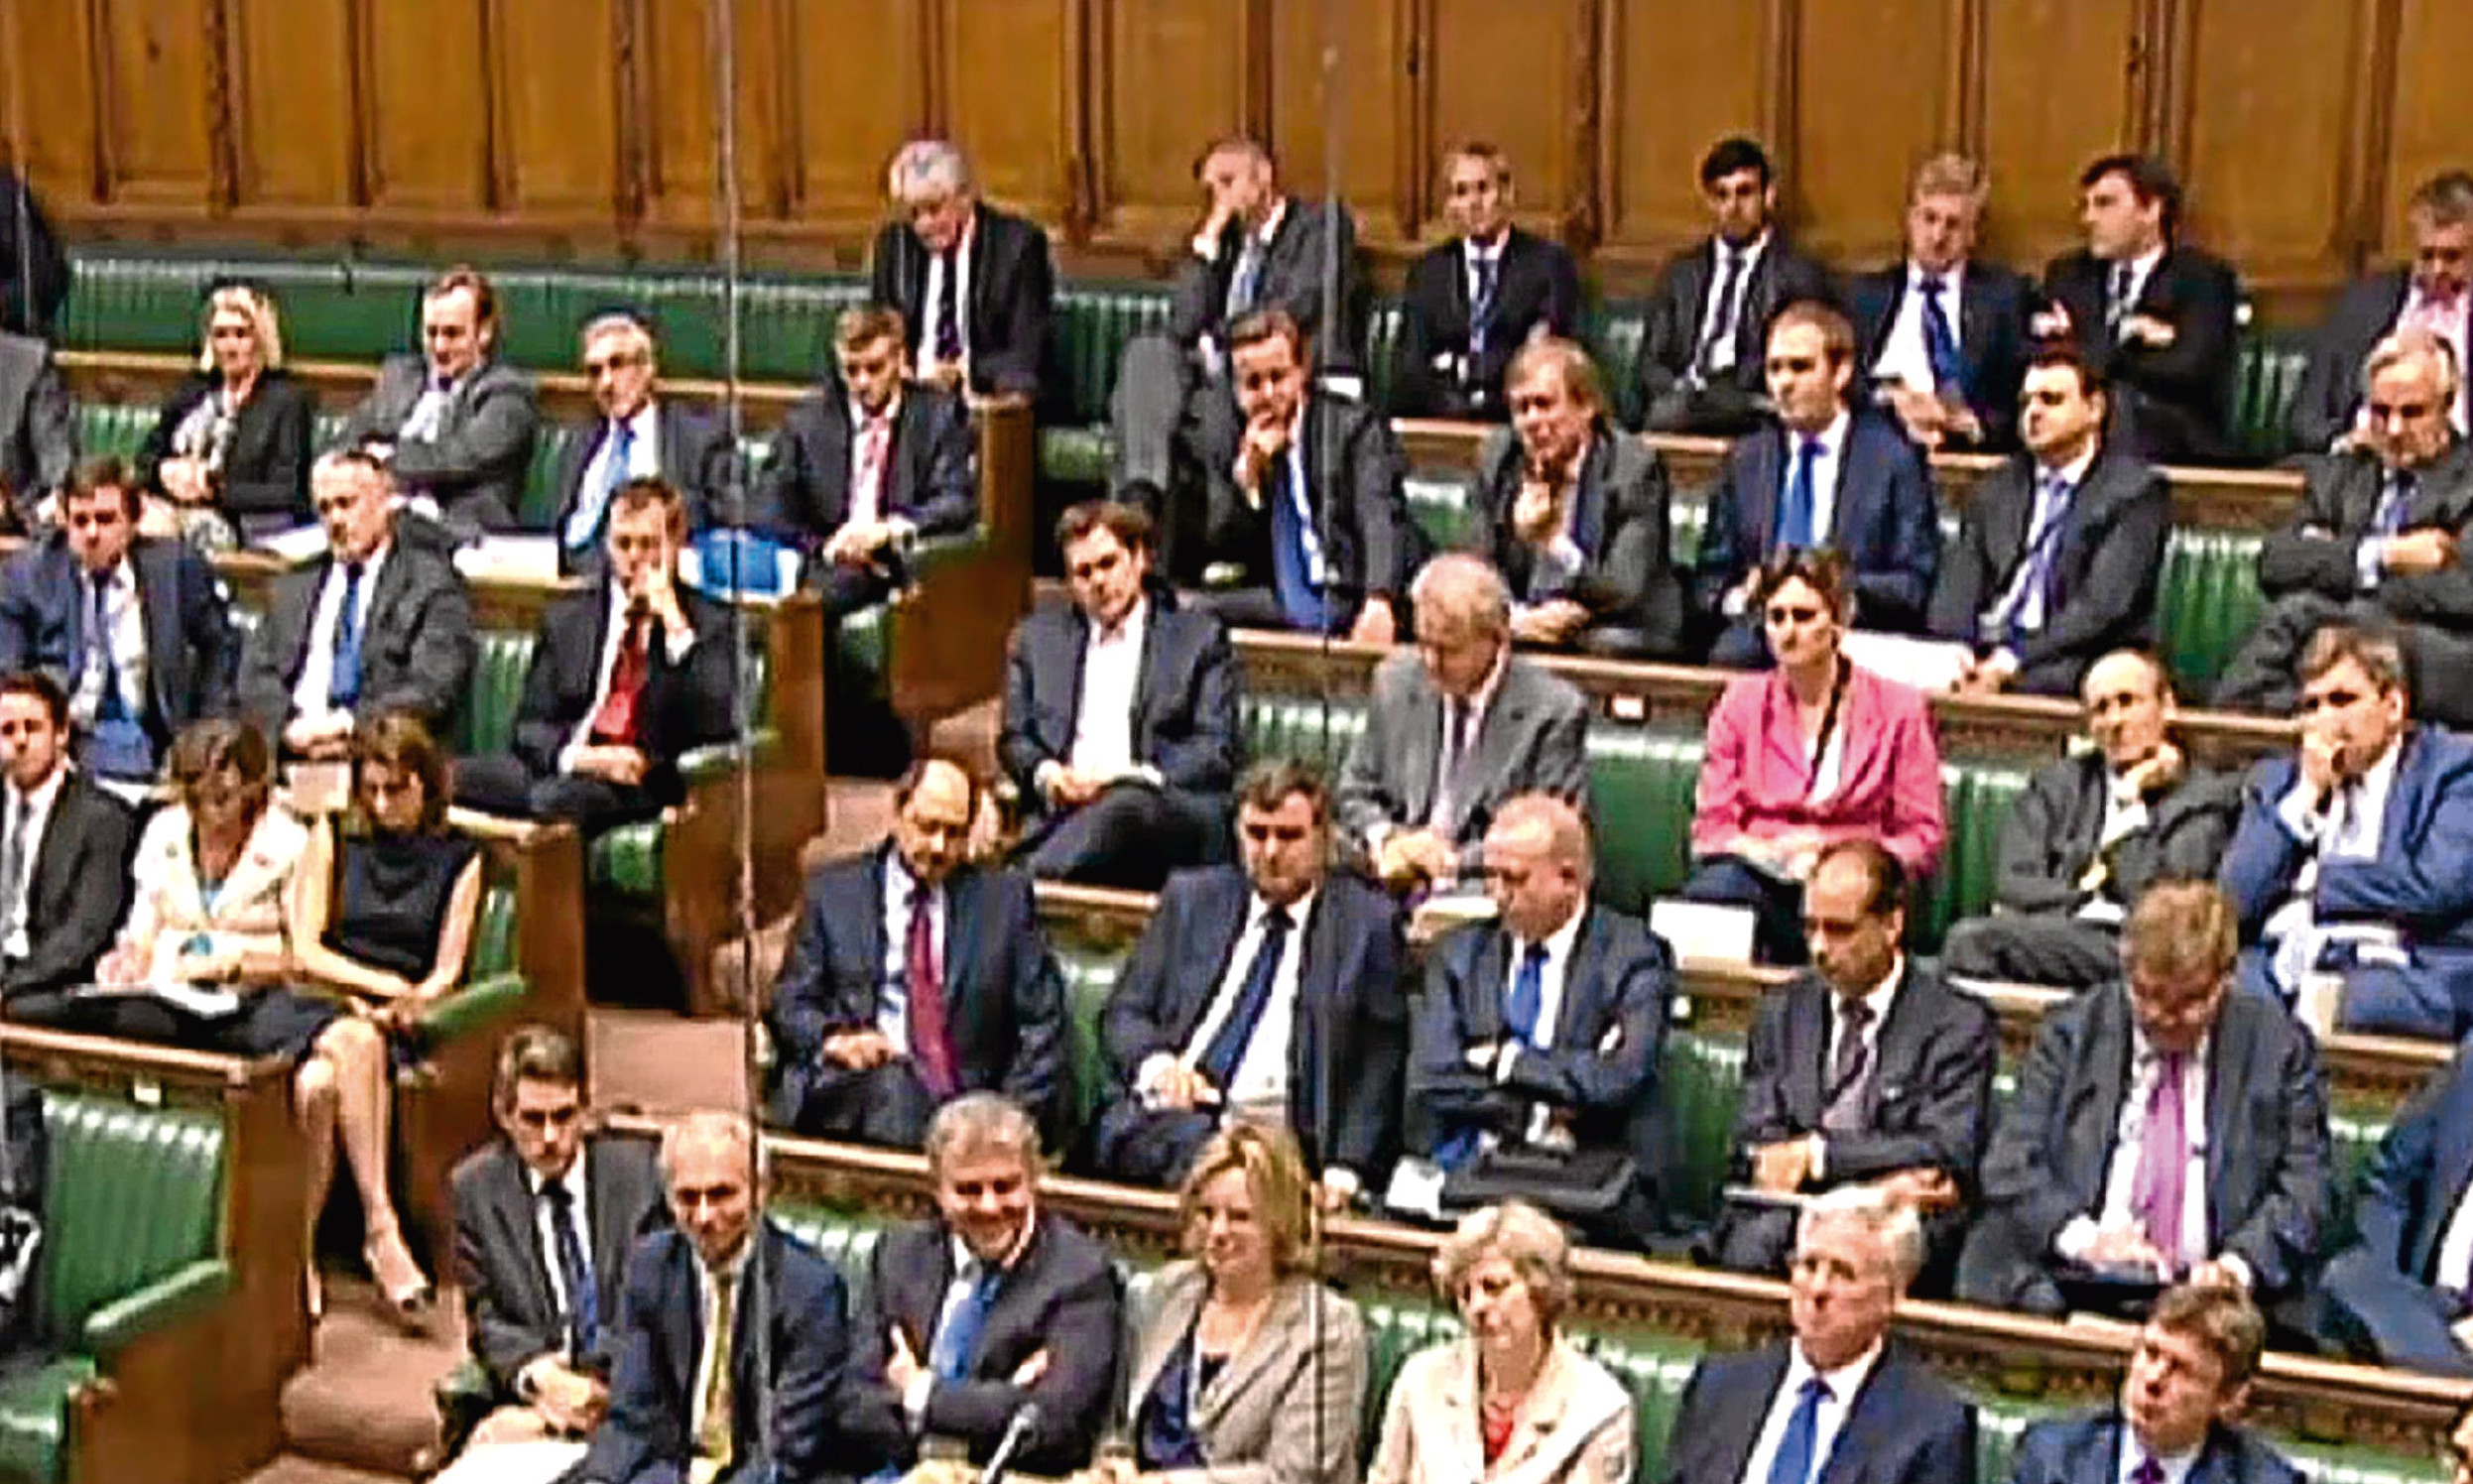 Just another backbencher. David Cameron, centre with his head resting on his hand, watches the Trident debate in the Commons from afar.